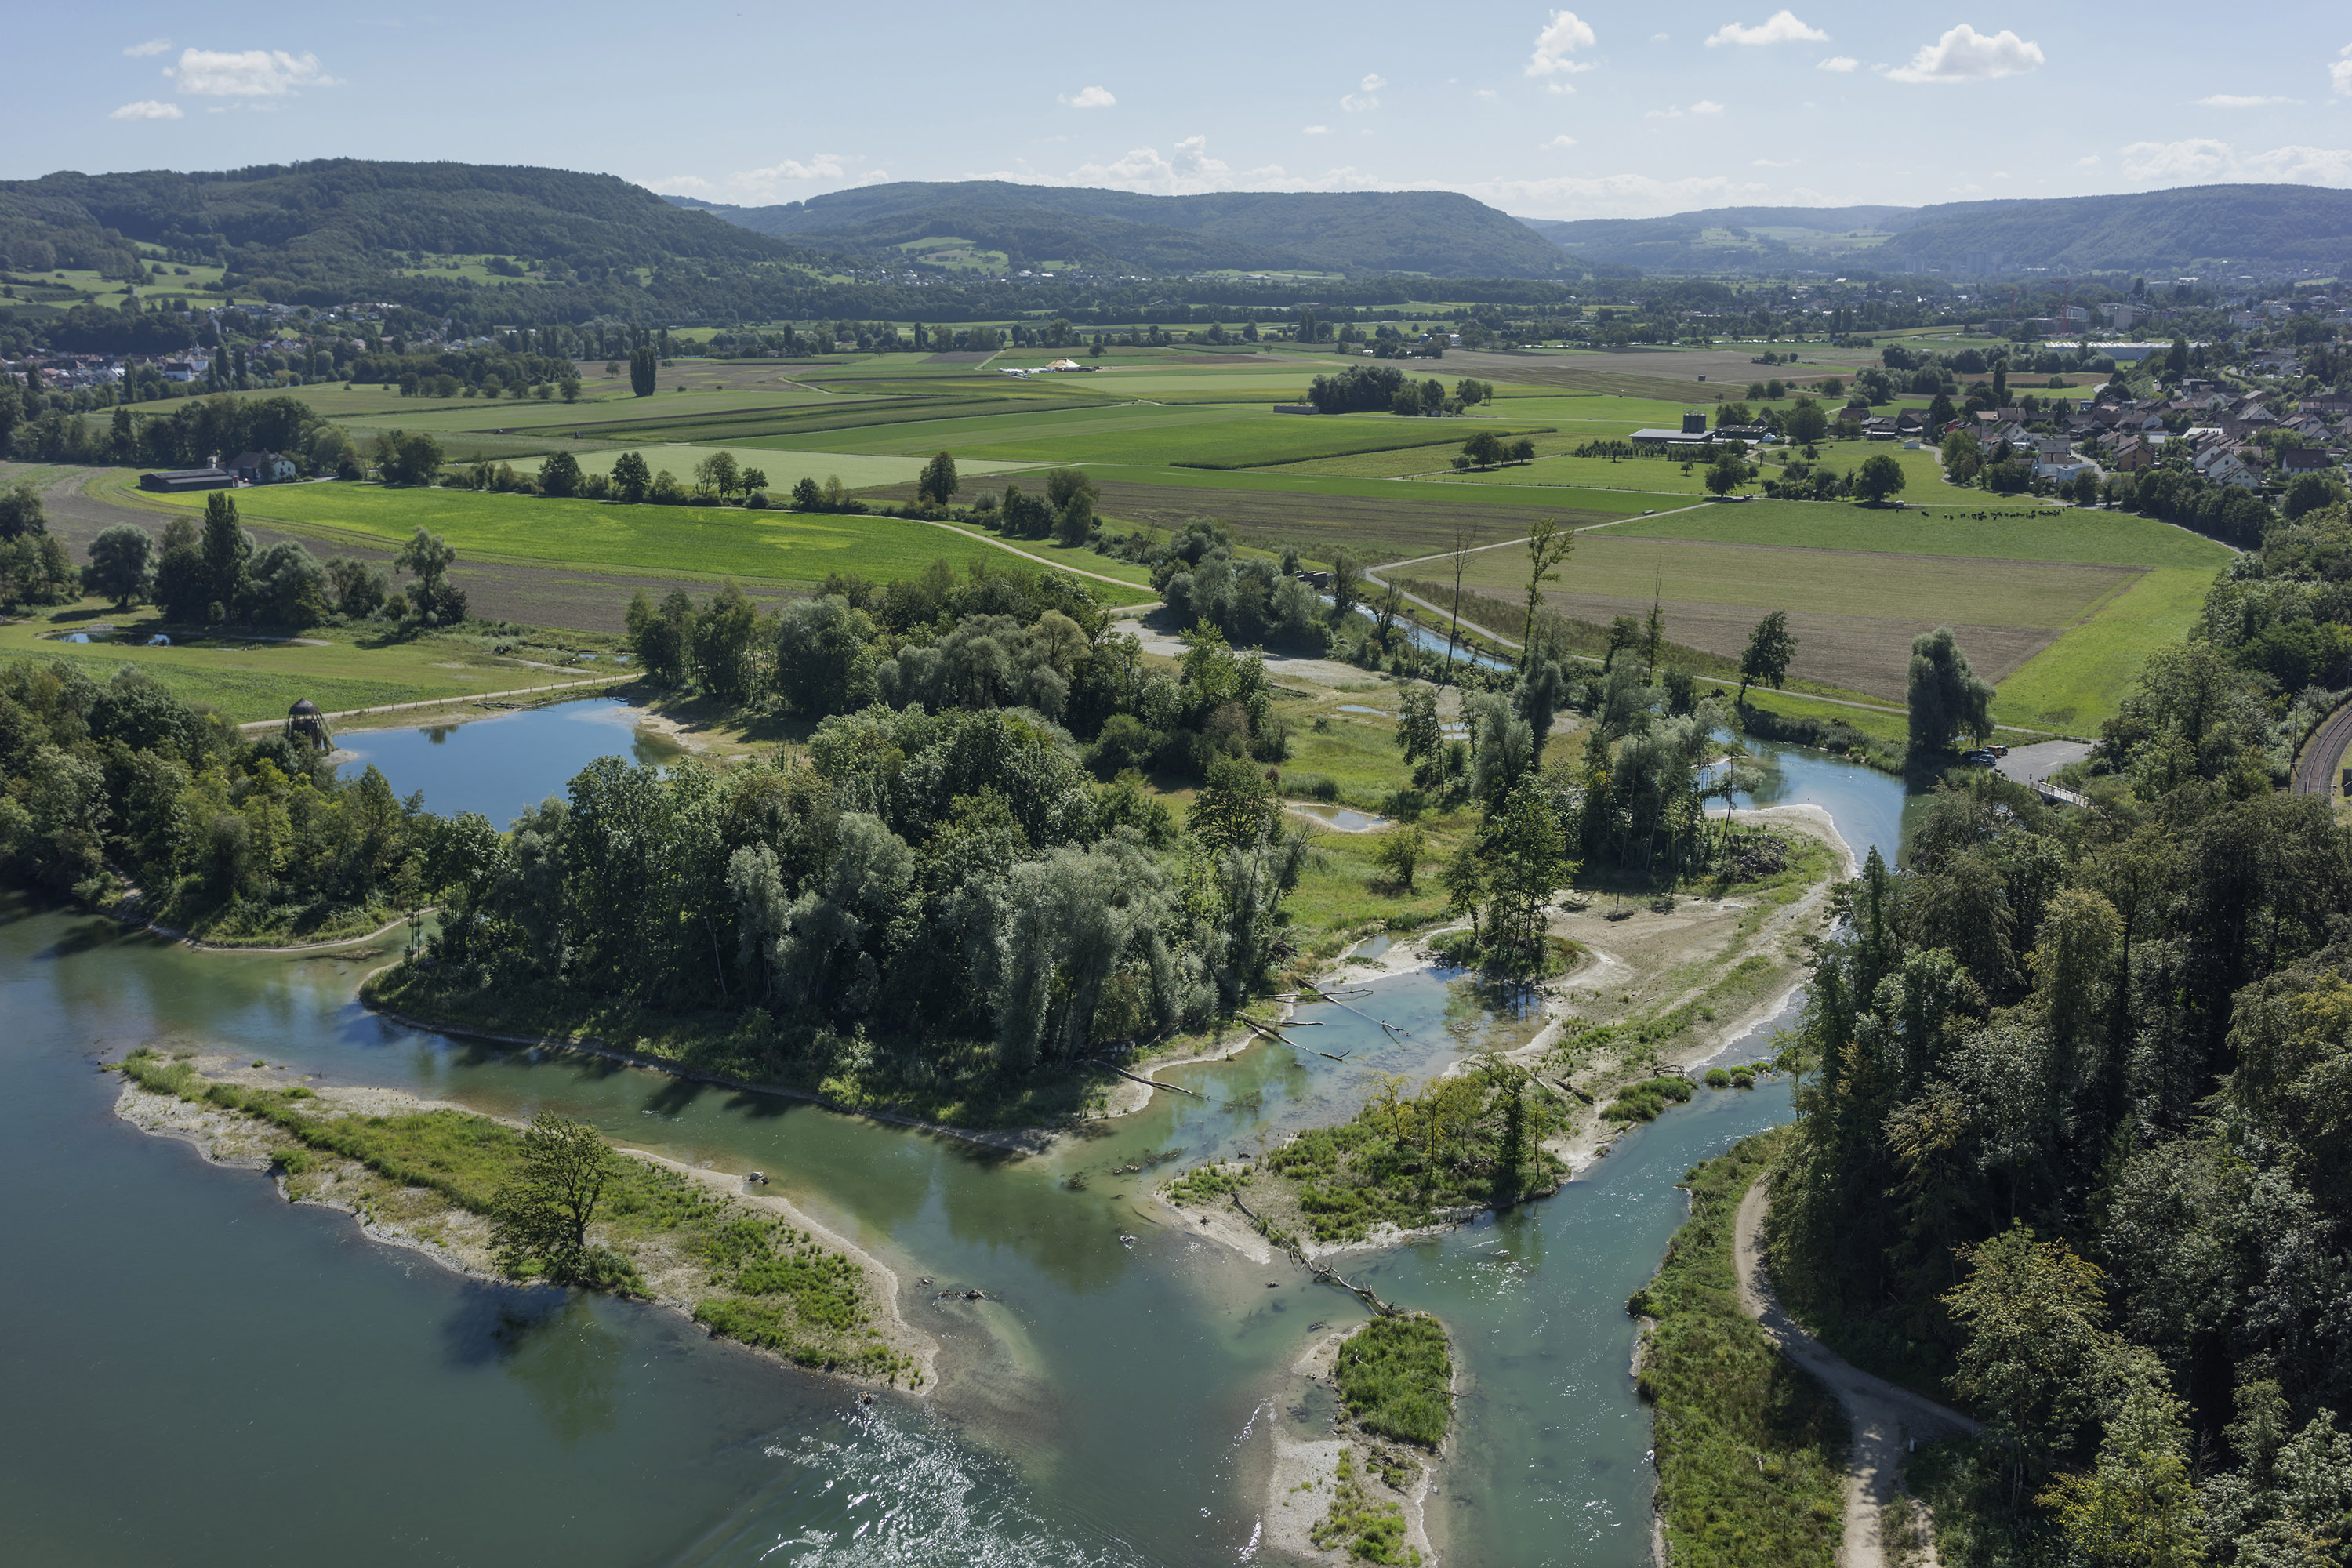 Paysage 2000 tout chly rhy, rietheim (ag) | plateforme renaturation